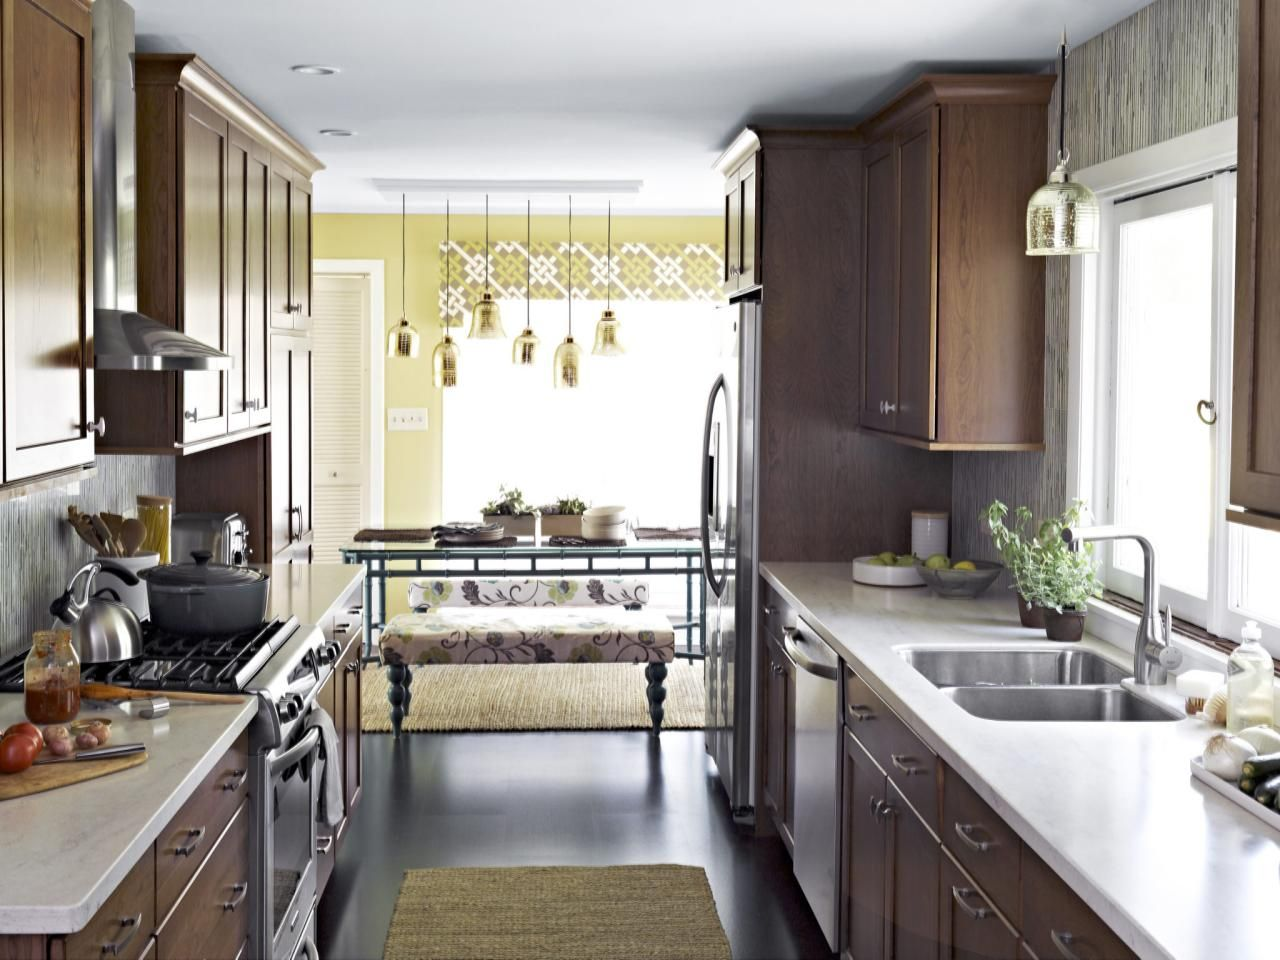 Old Kitchen Cabinets Pictures Ideas Tips From Hgtv Kitchen Ideas Design With Cabinets Islands Small Kitchen Decor Kitchen Layout Kitchen Design Small